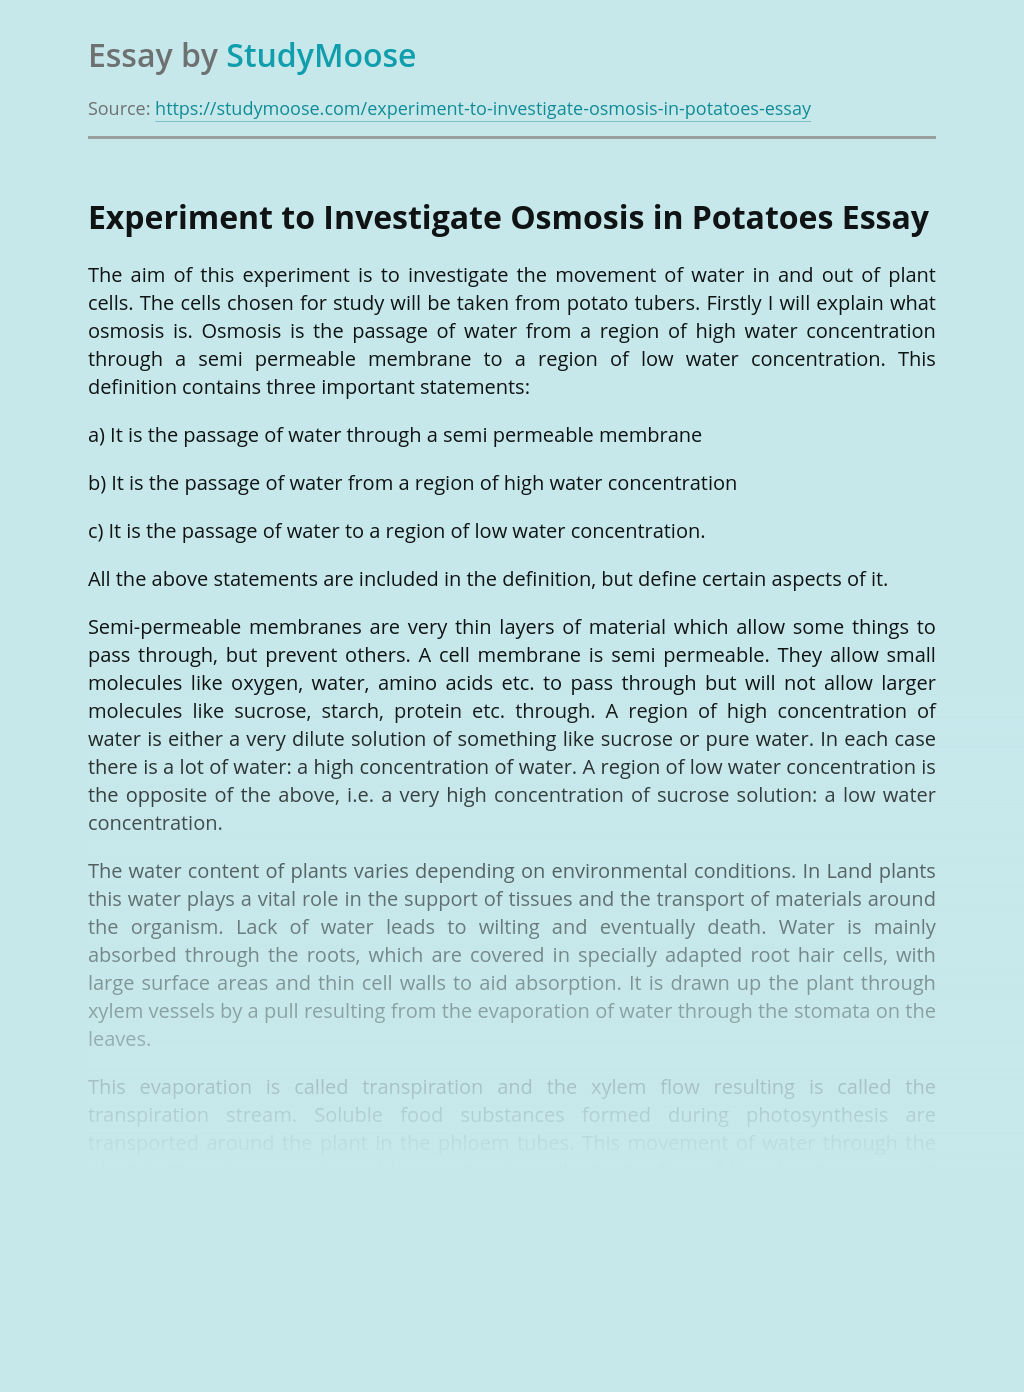 Experiment to Investigate Osmosis in Potatoes